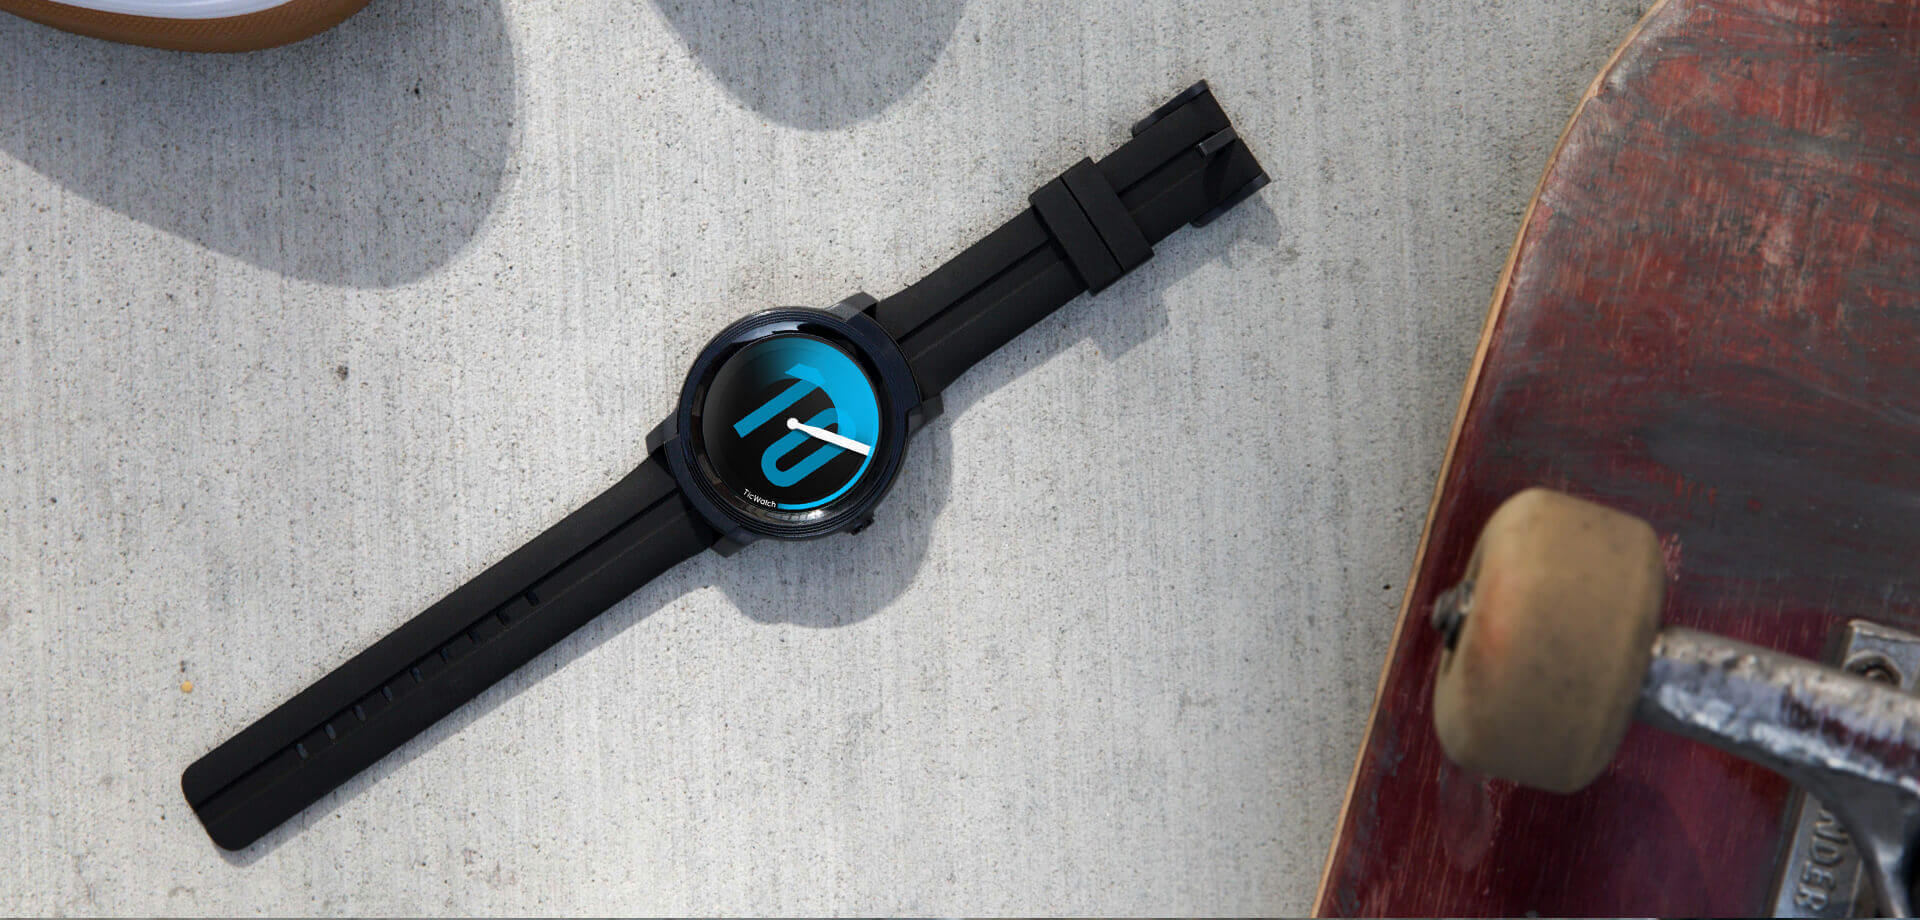 It'd be nice to carry audio on cheaper smartwatches, like the ones from Mobvoi ($160 E2 model shown above)